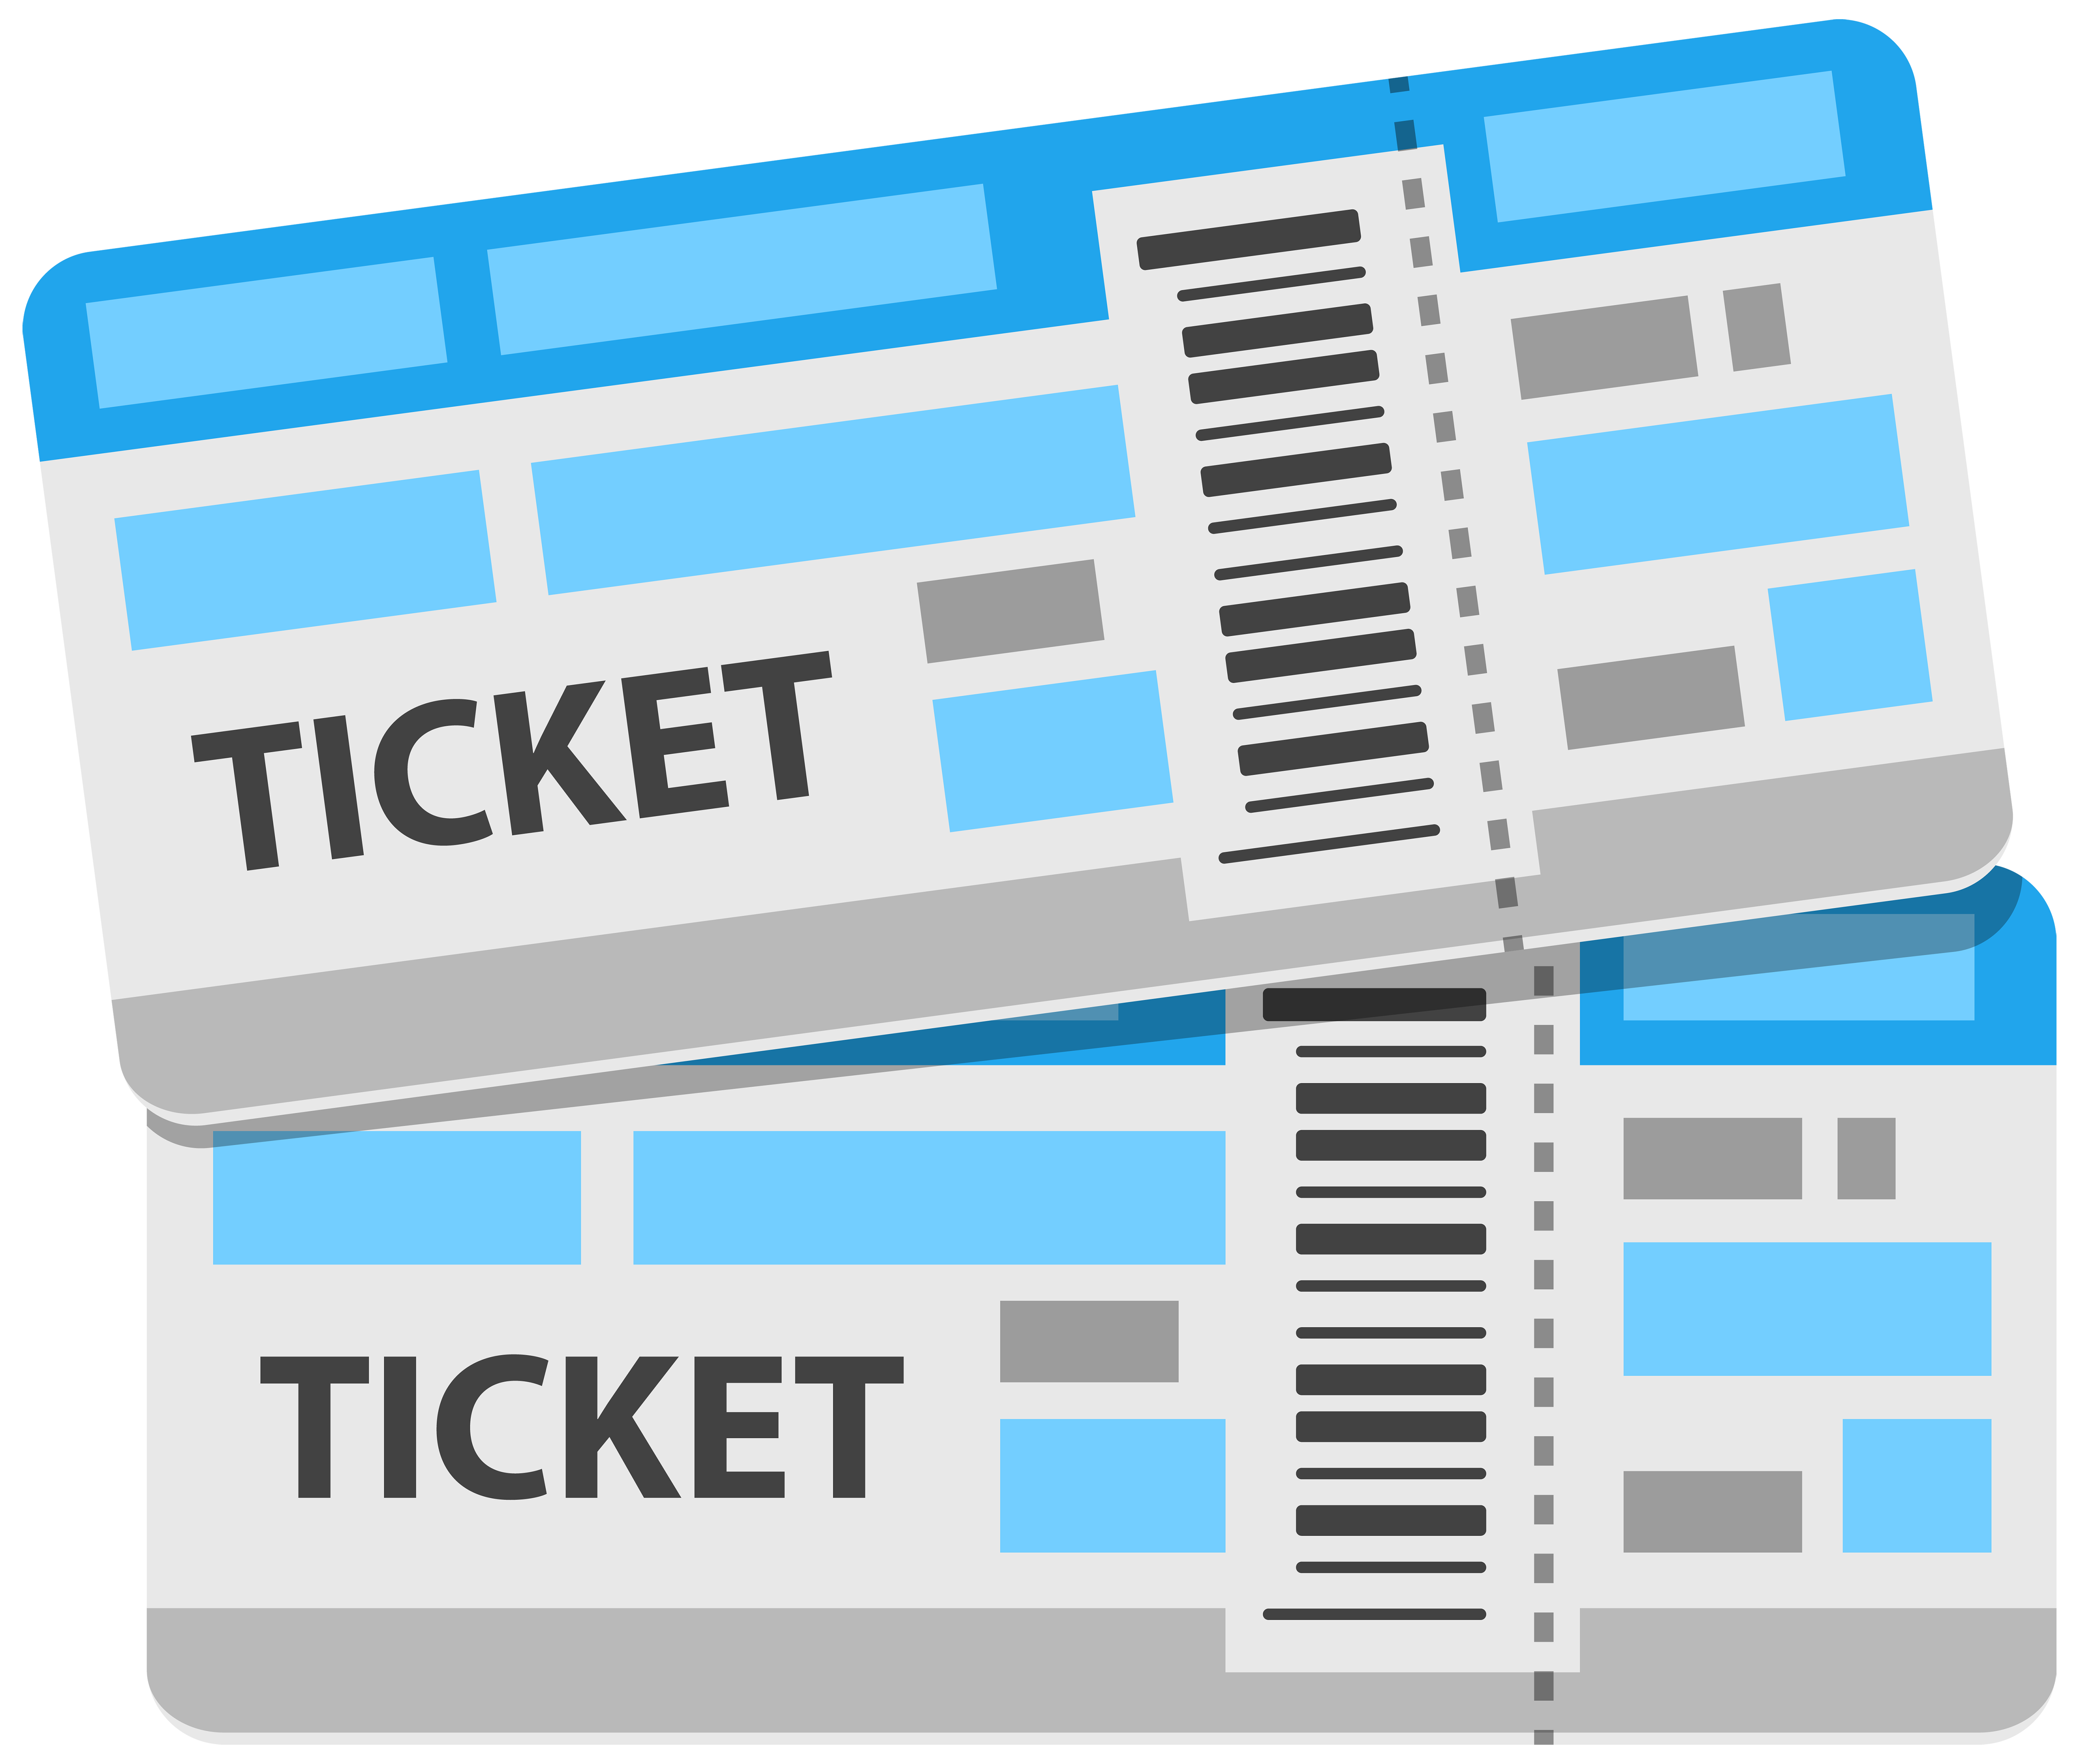 clipart black and white stock Tickets frames illustrations hd. Ticket clipart